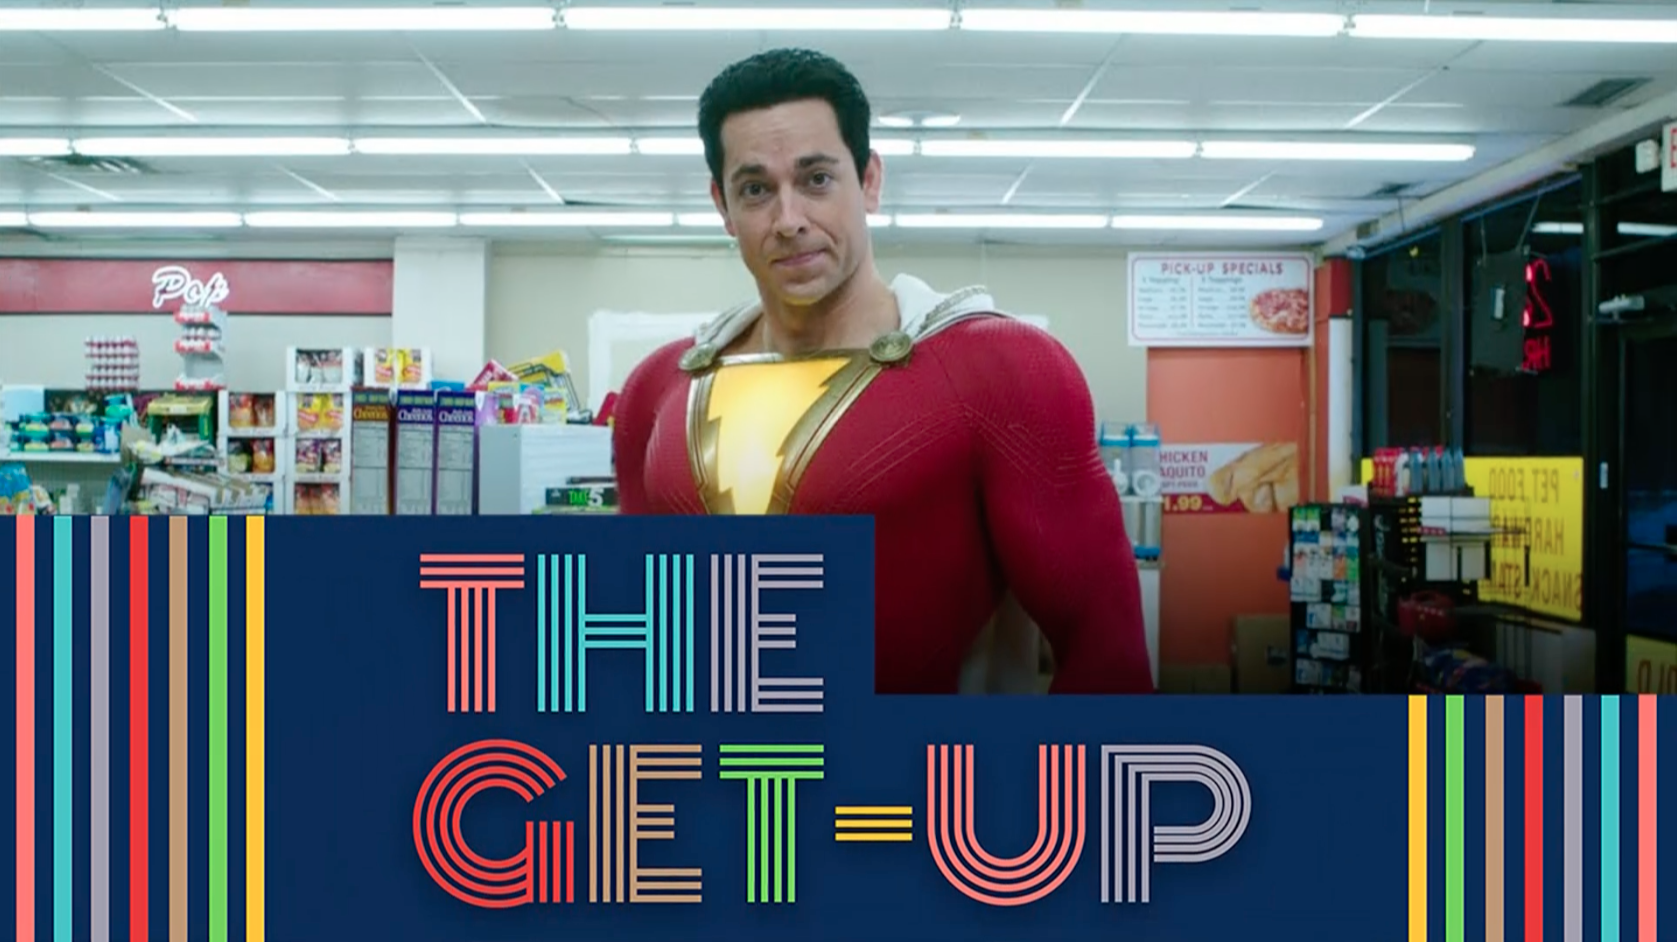 The Get Up - March 25, 2019 screen capture